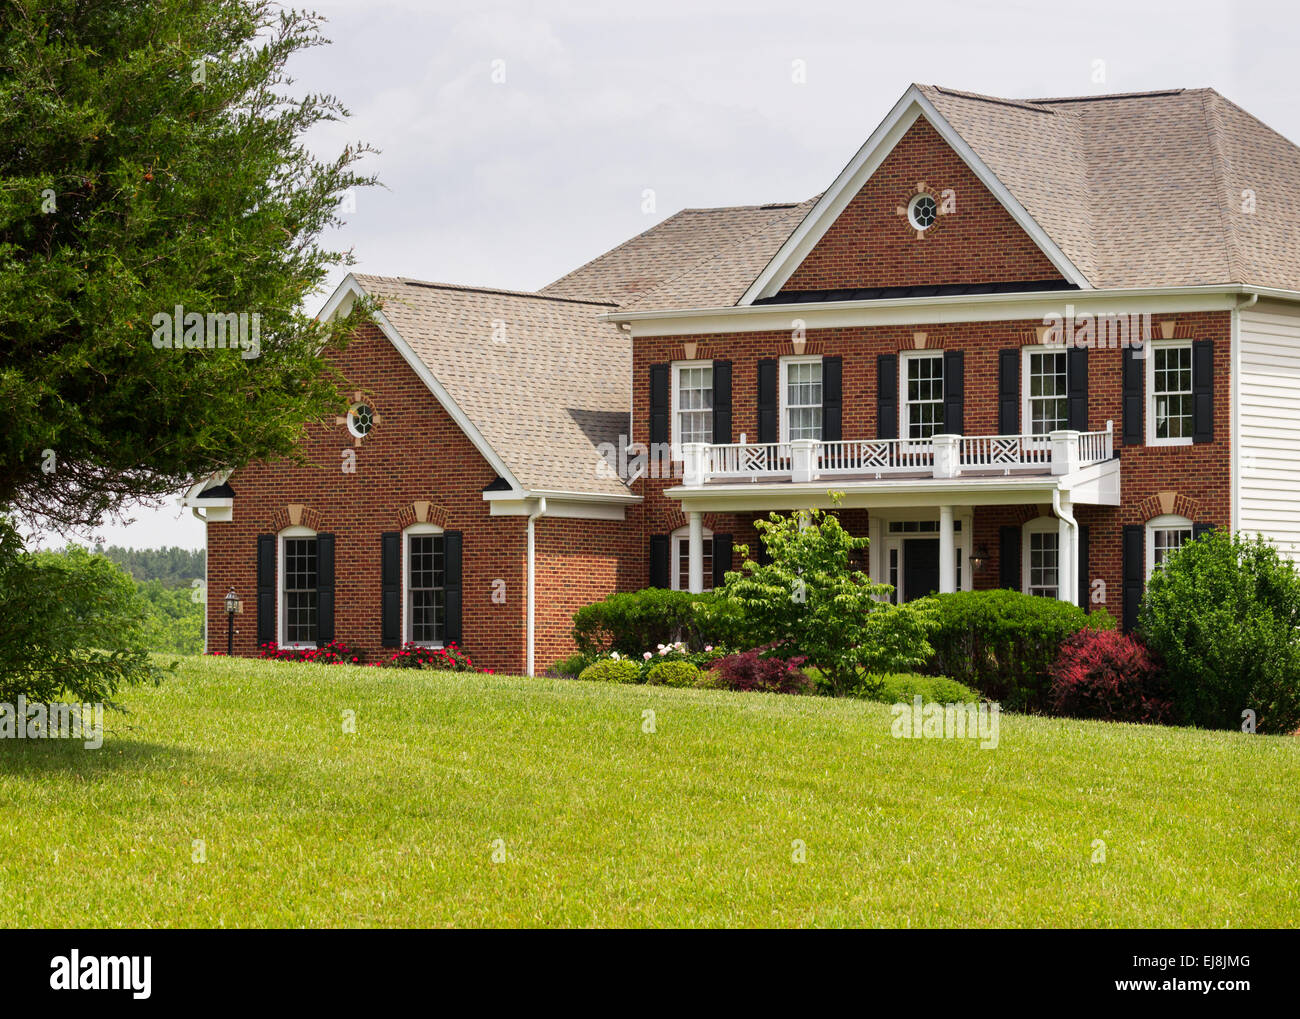 Front elevation large single family home  Stock Image Exterior Elevation Luxury Home Photos